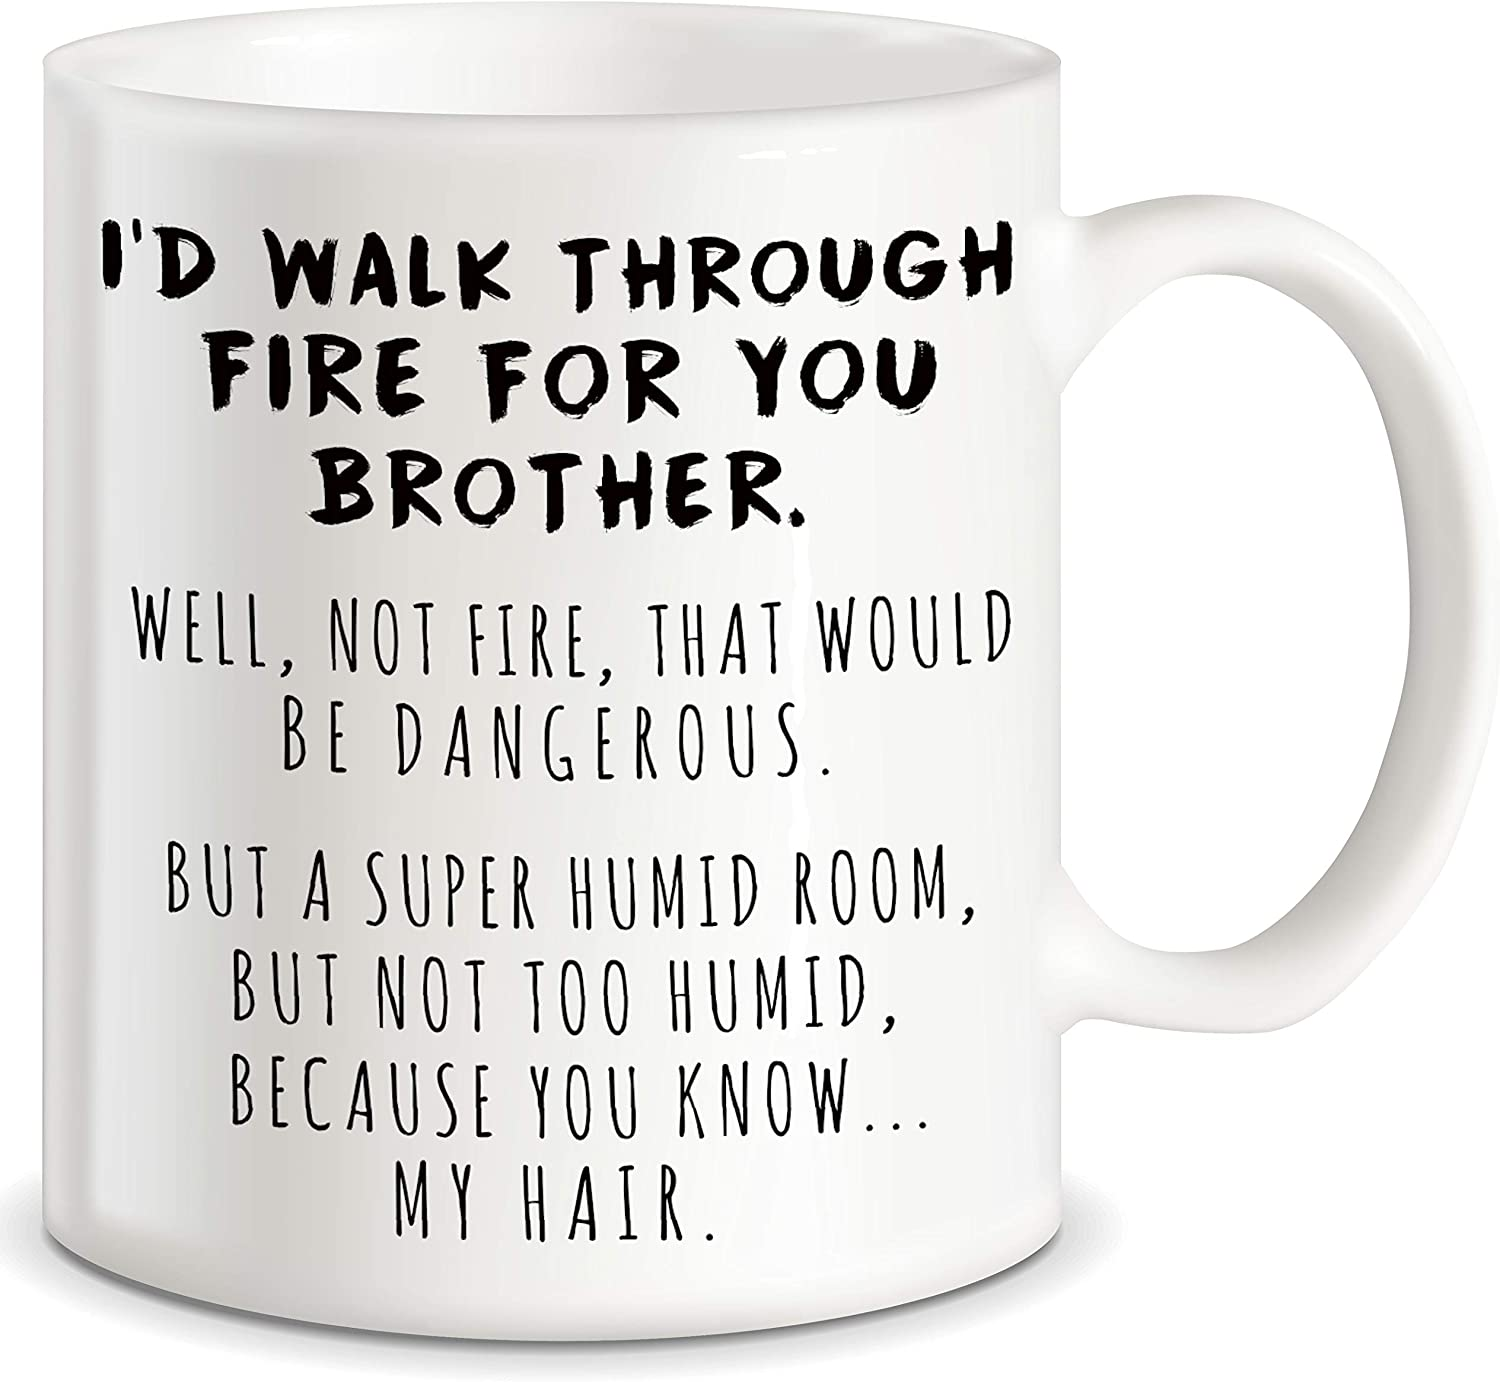 Funny Brother Christmas Gifts Plaques Novelty Gift Idea For Brother From Sister